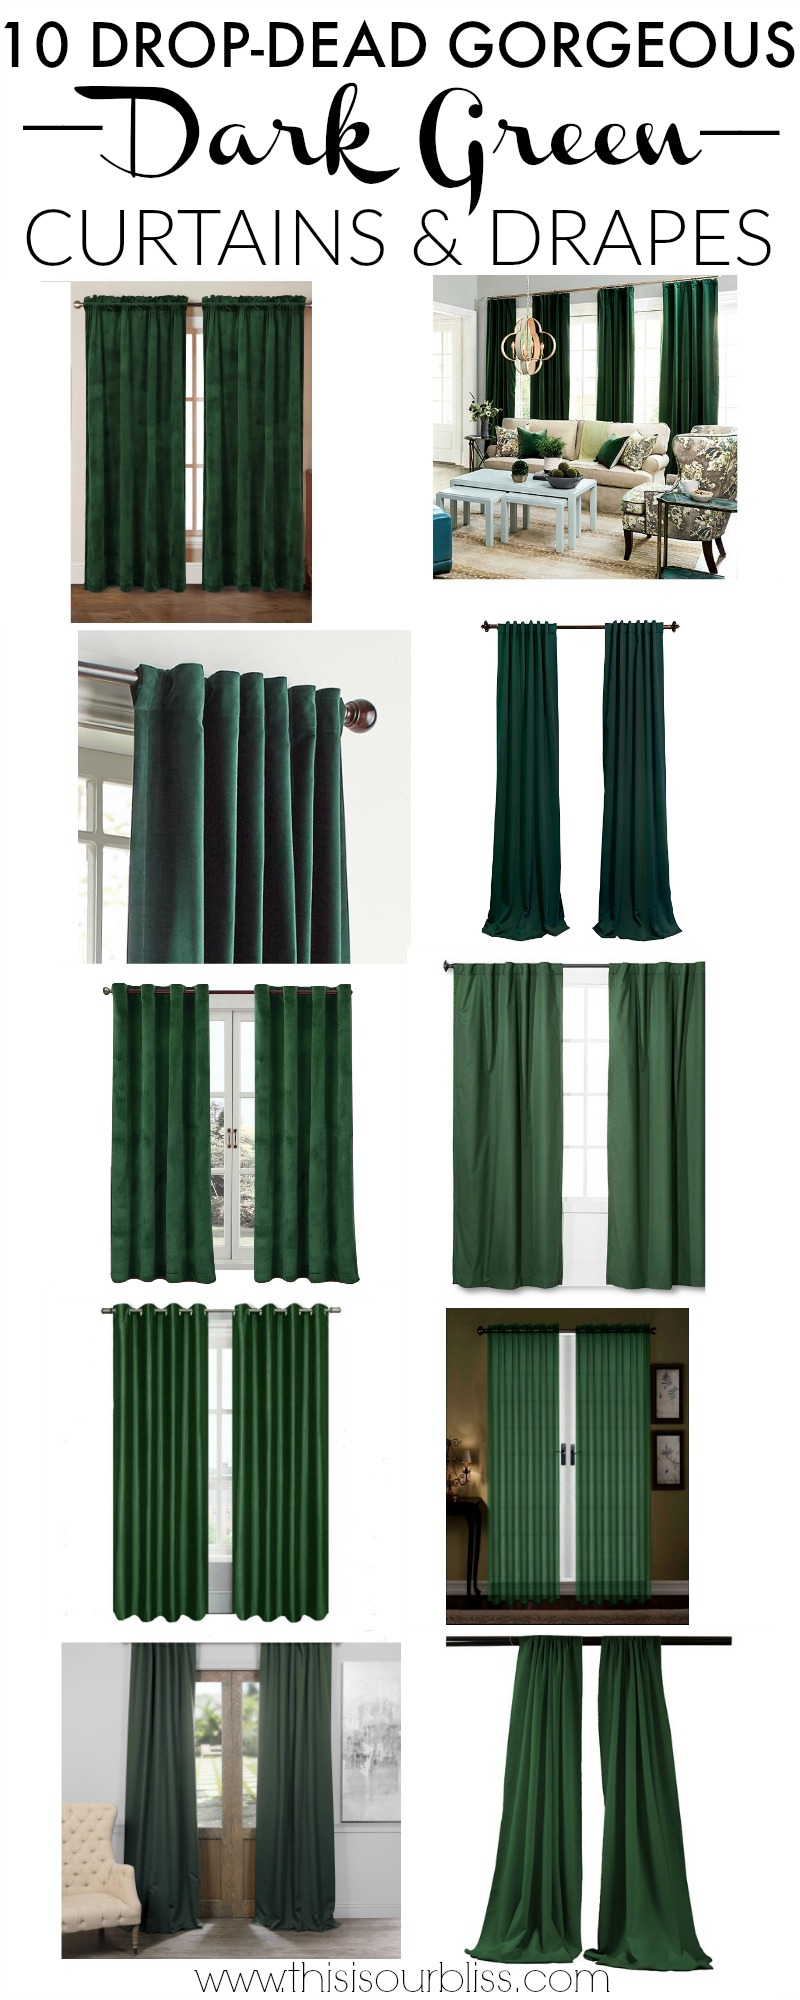 Top Ten Drop-dead Gorgeous Dark Green Drapes and Curtains - This is our Bliss